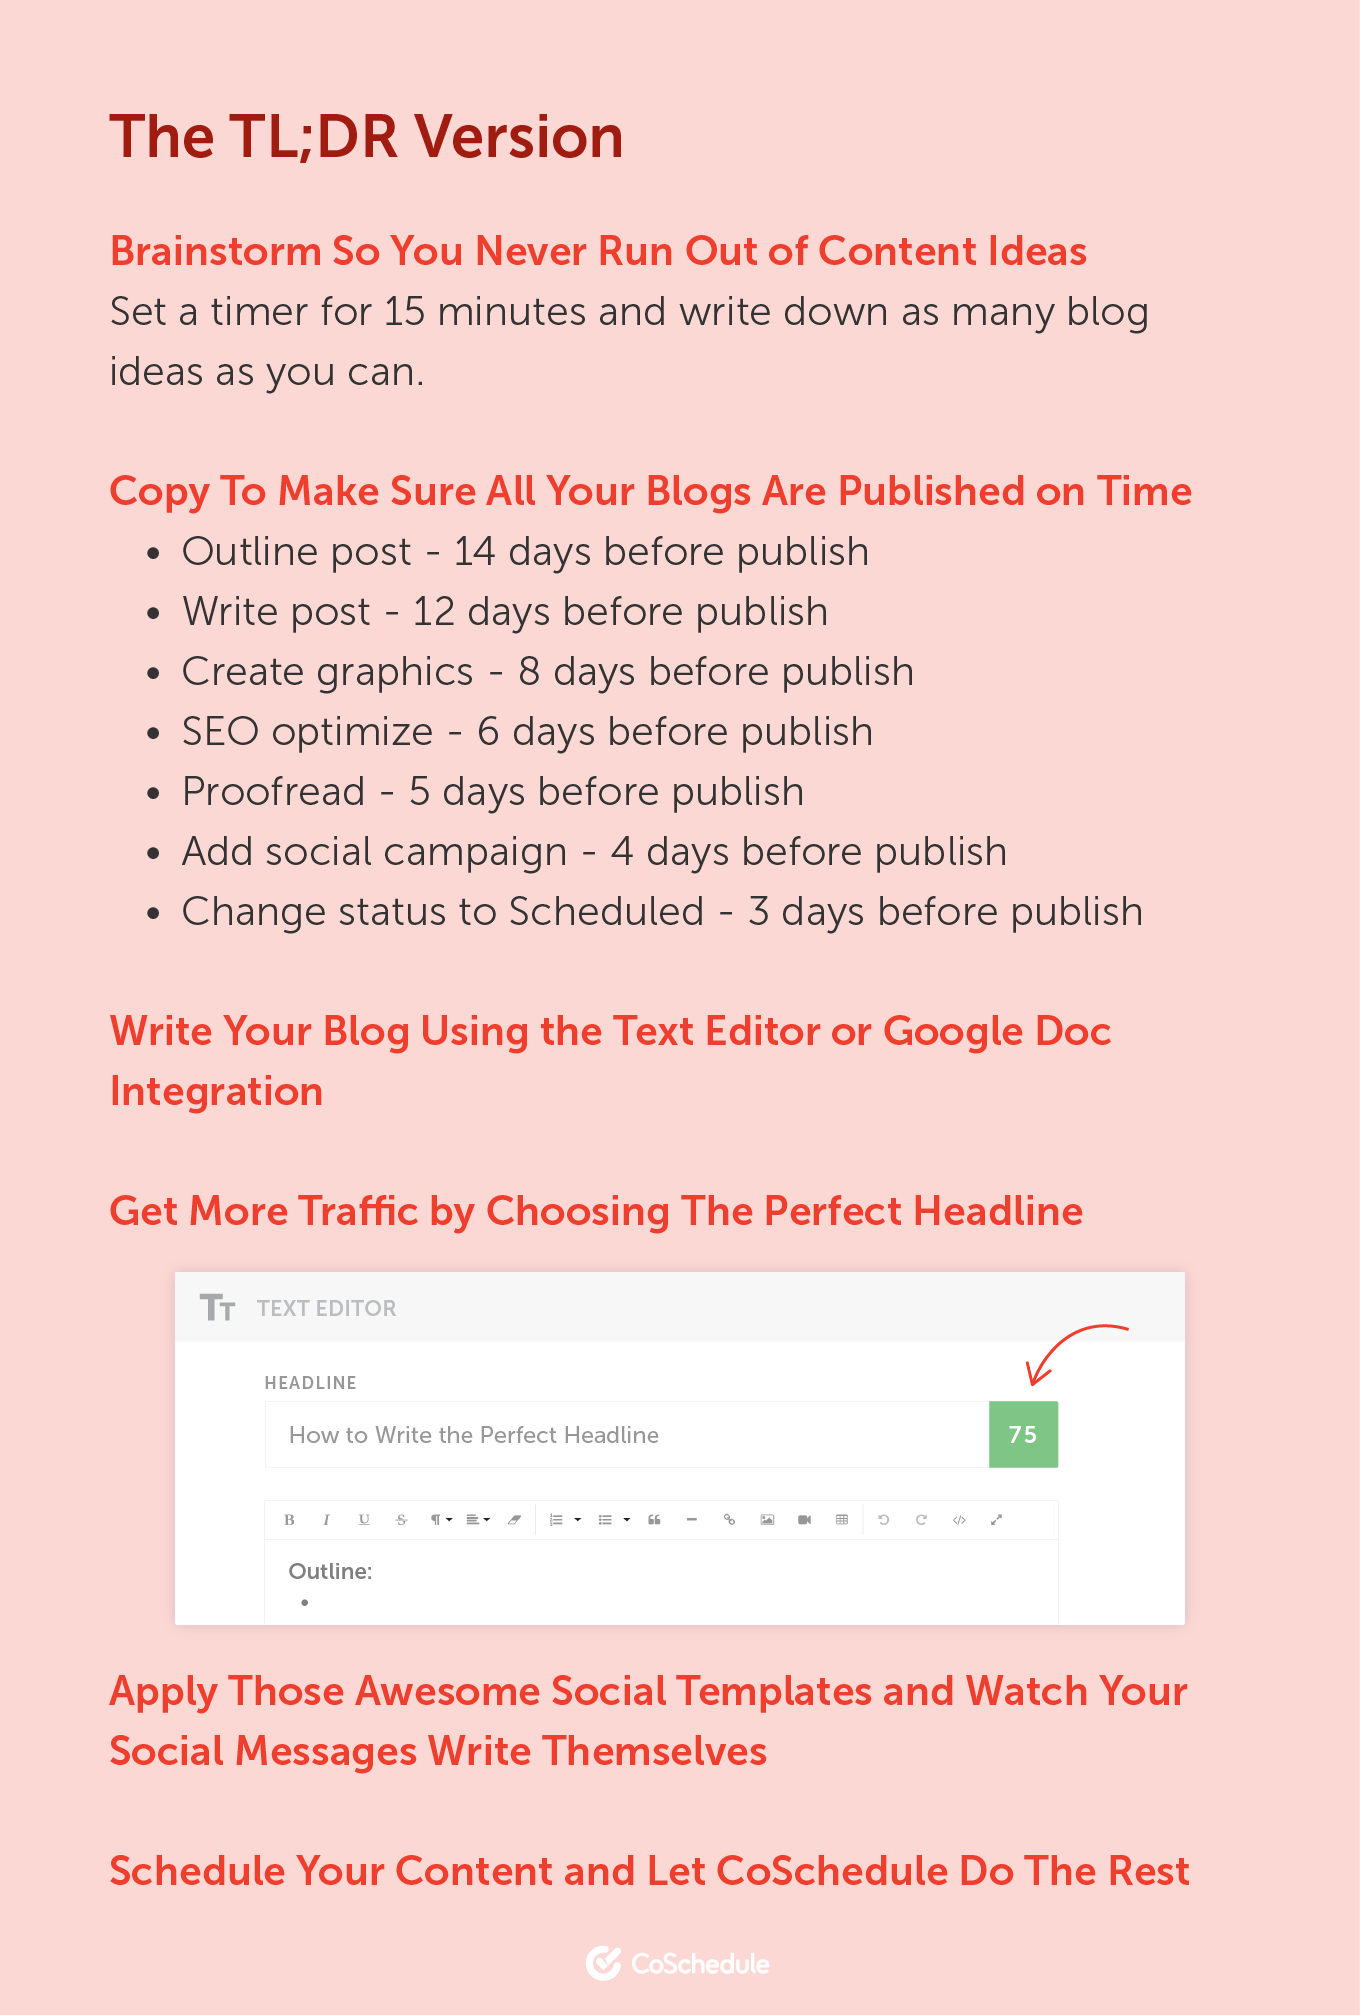 TL;DR Version. Brainstorm So You Never Run Out of Content Ideas. Copy To Make Sure All Your Blogs Are Published on Time. Write Your Blog Using The Text Editor or Google Doc Integration. Get More Traffic by Choosing The Perfect Headline. Apply Those Awesome Social Templates and Watch Your Social Messages Write Themselves. Schedule Your Content and Let CoSchedule Do The Rest